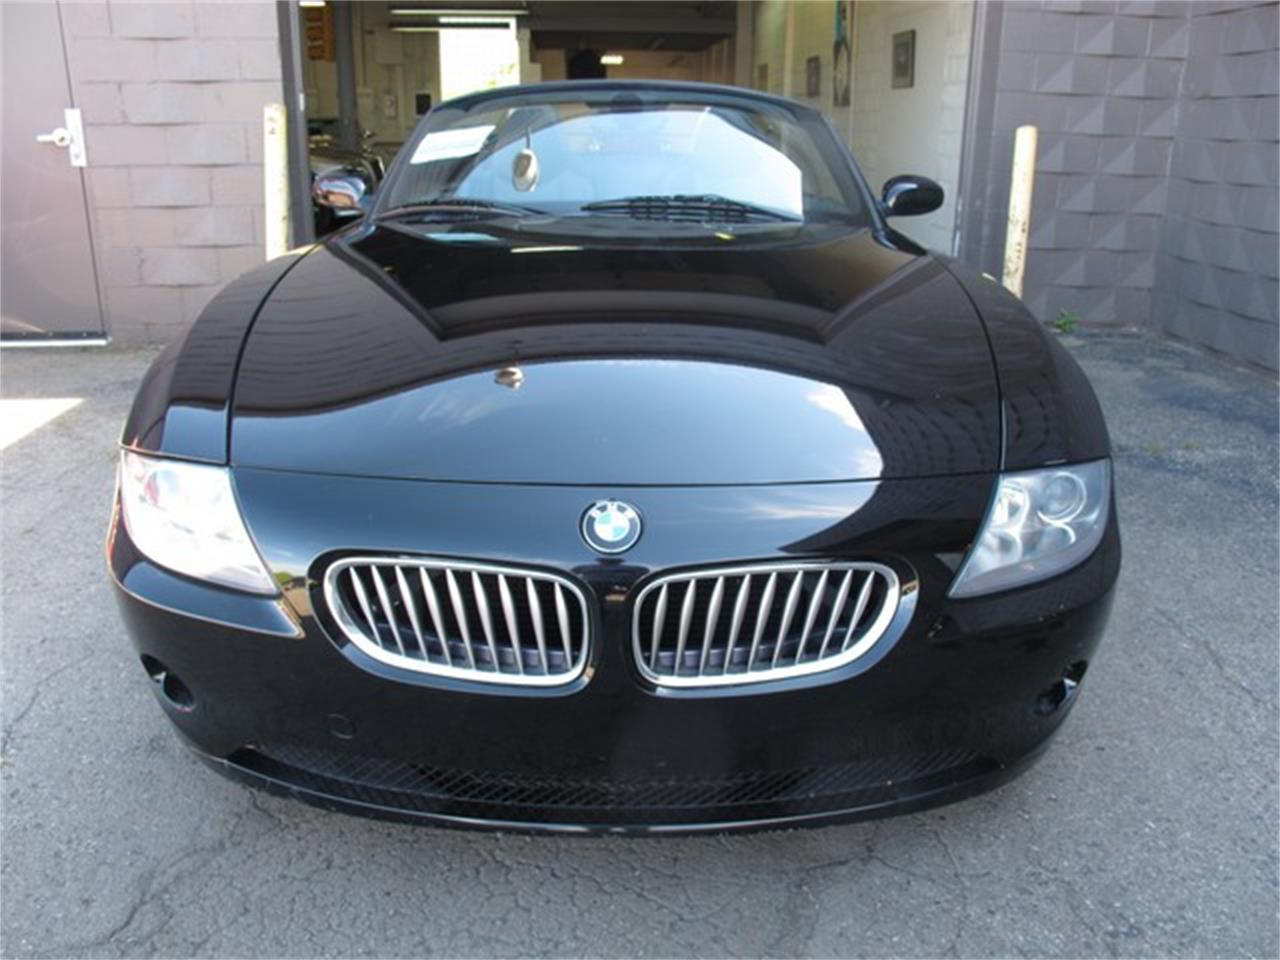 2005 BMW Z4 for sale in Troy, MI – photo 2